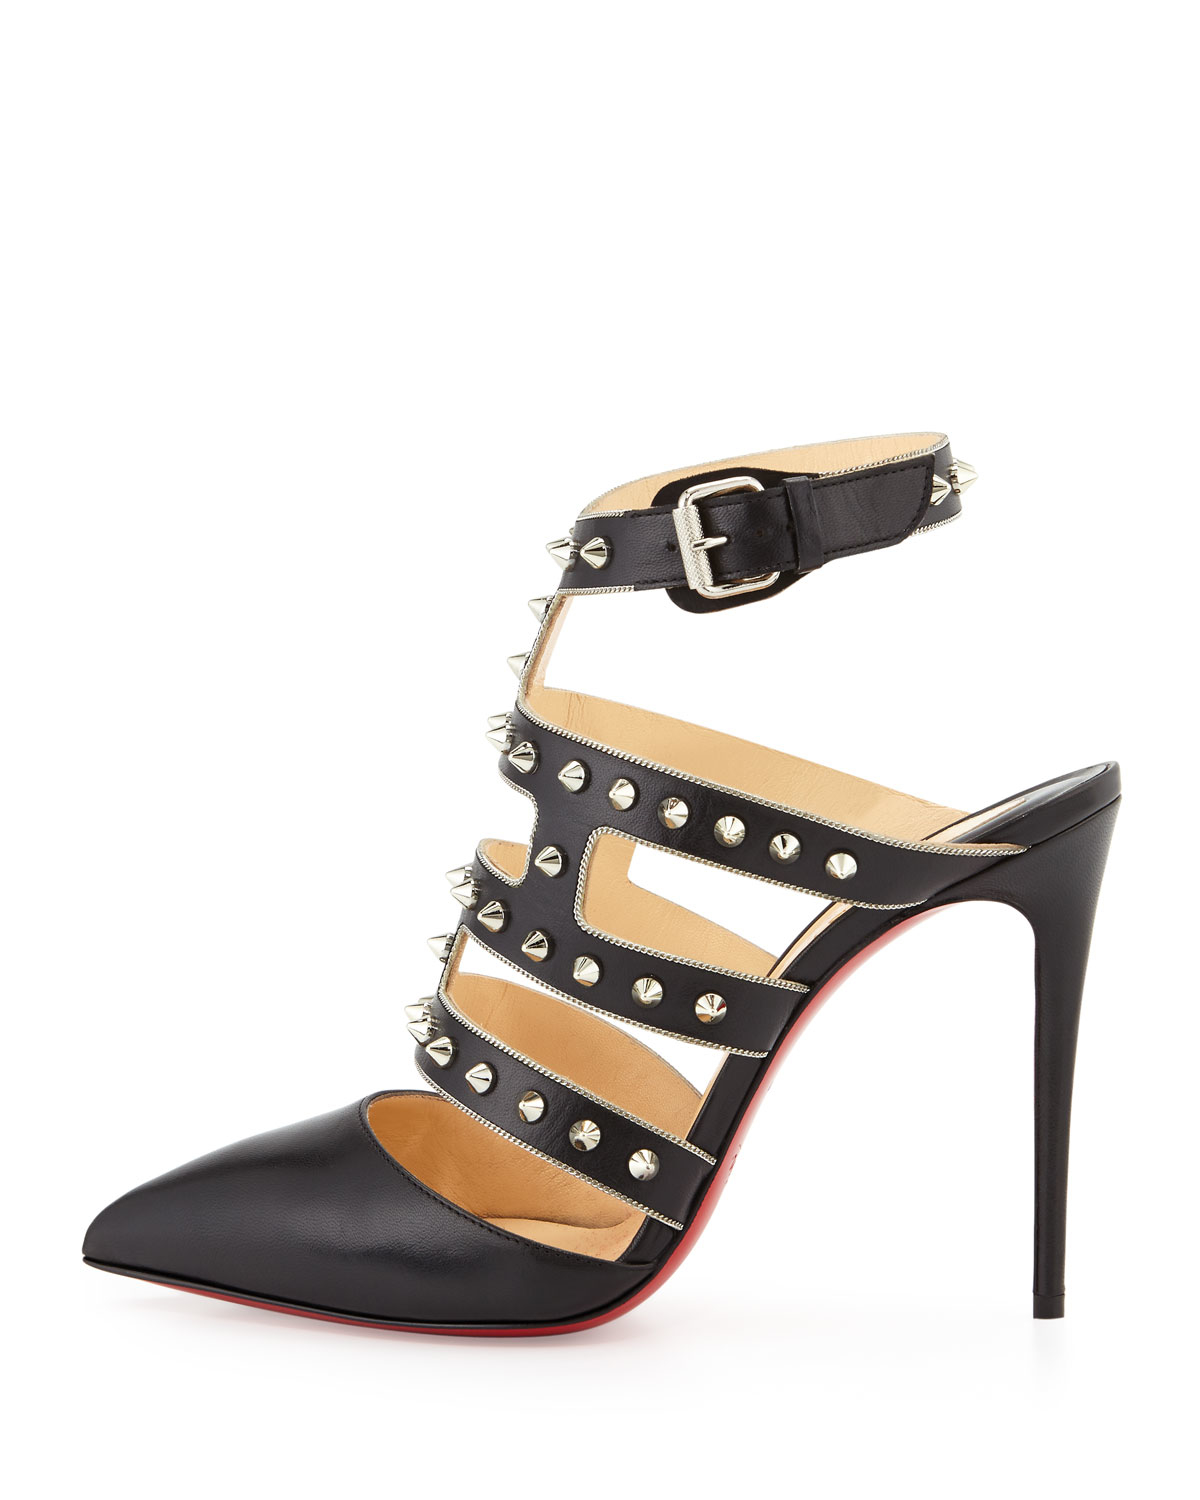 Christian louboutin Tchikaboum Studded Red Sole Pump in Silver ...